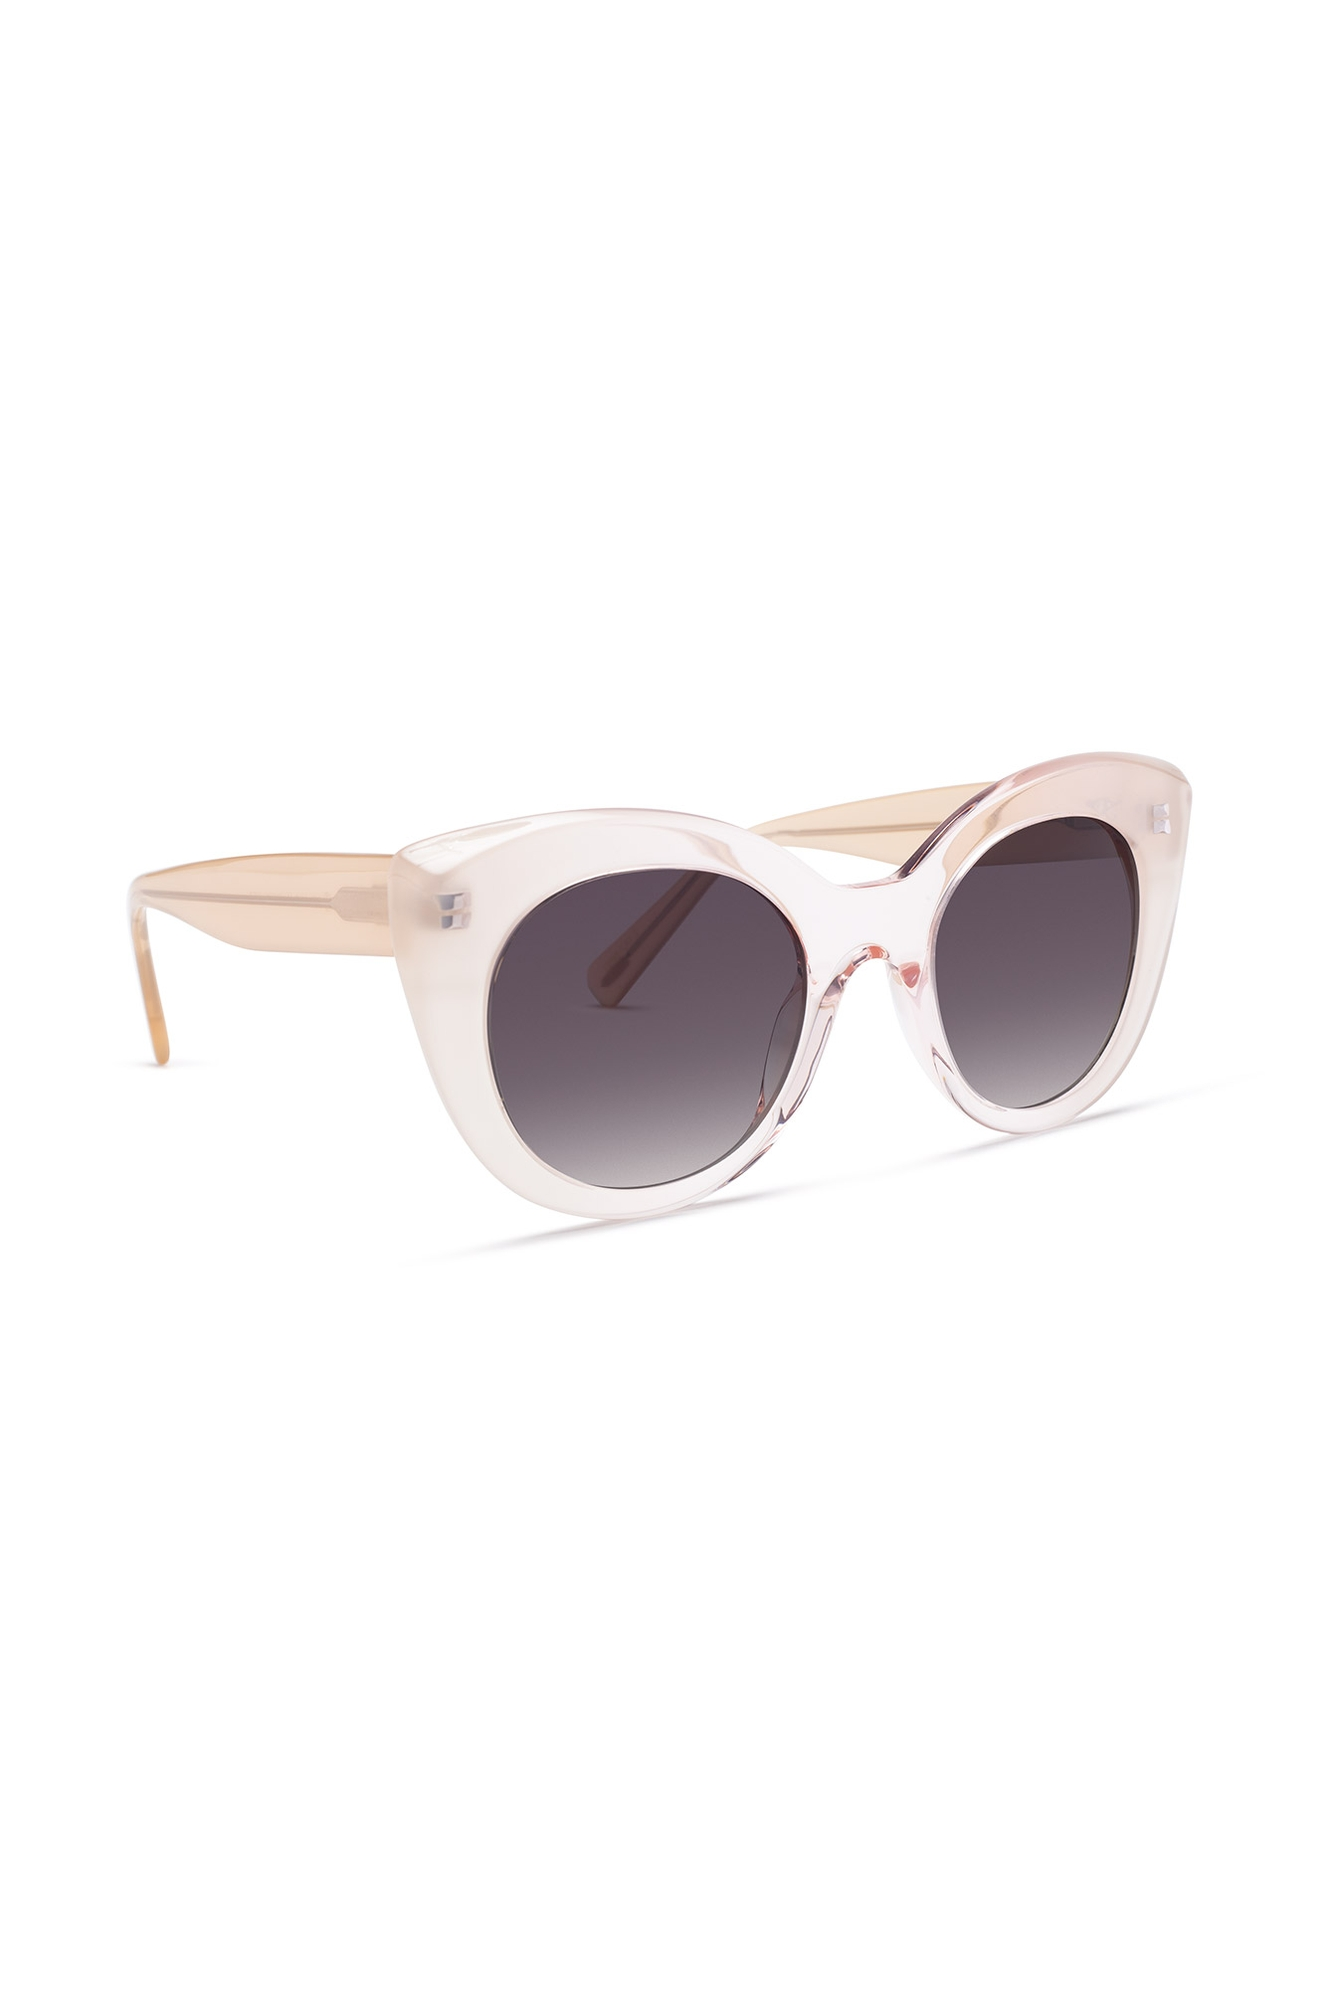 Amuse for D'Blanc Modern Lover Sunglasses